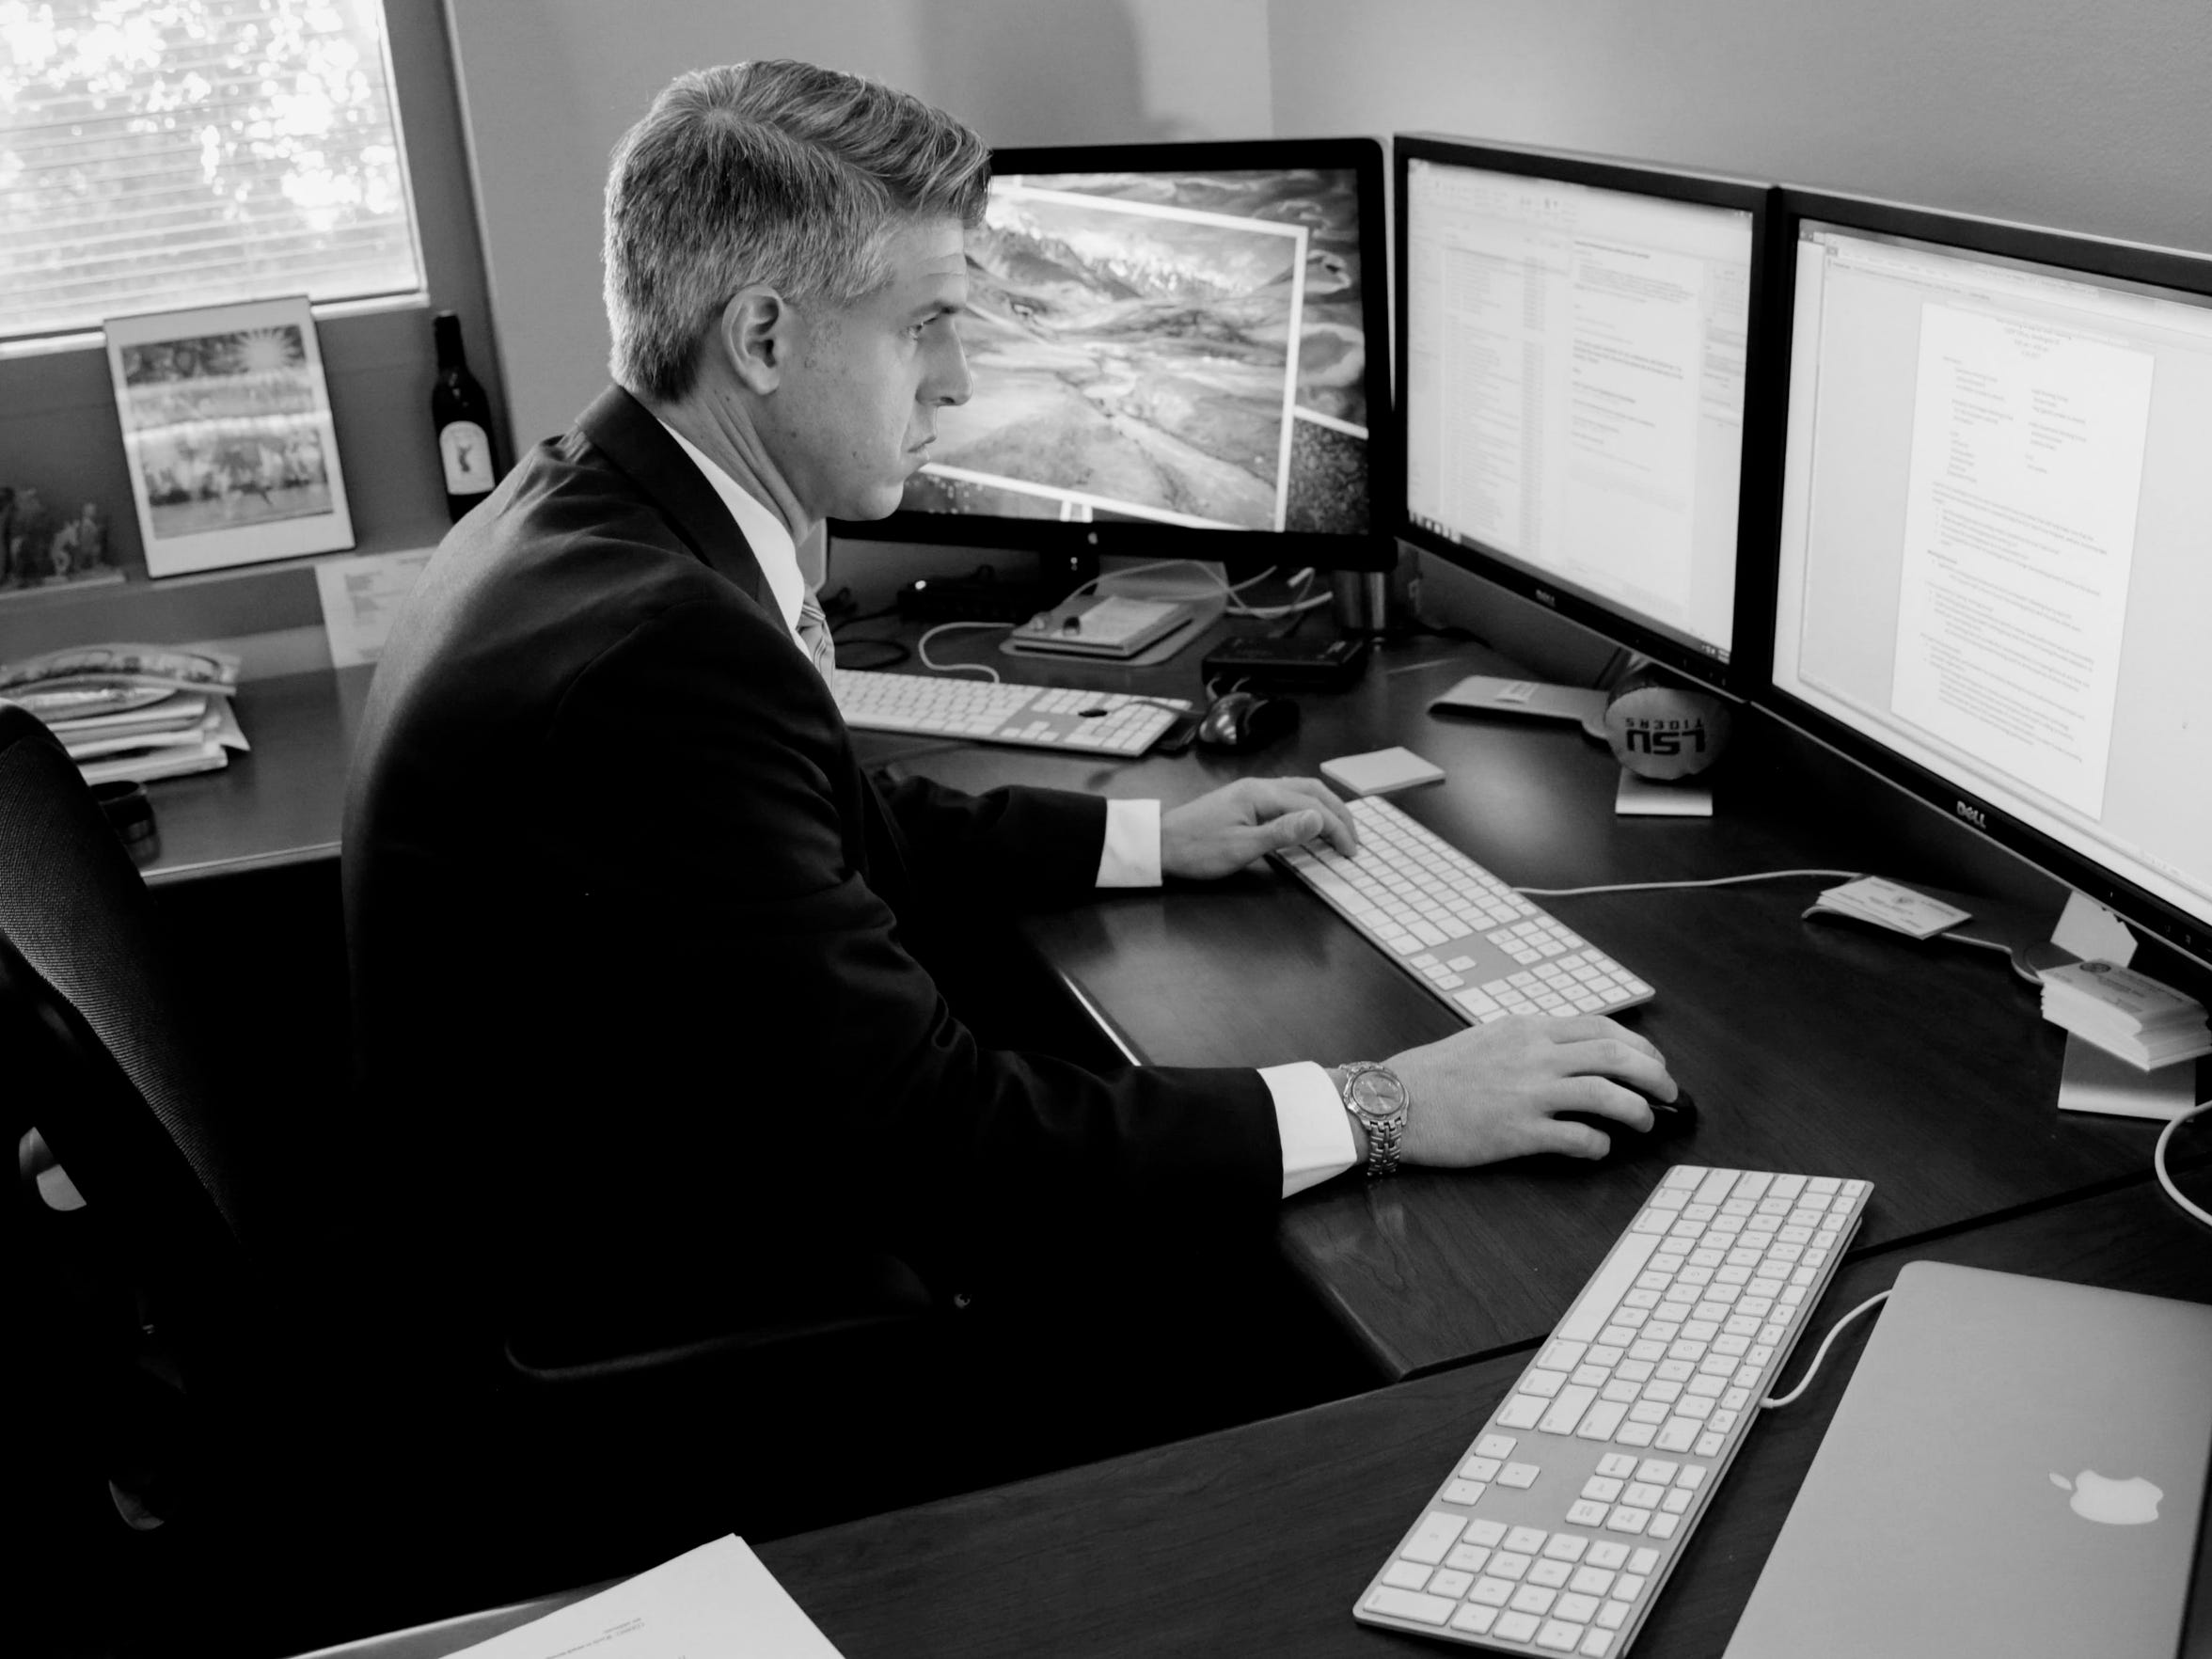 Lab Supervisor Corey Bourgeois at the Attorney General's Cyber Crime Lab.  Bourgeois and his staff use forensic examinations of devices to recover deleted data.